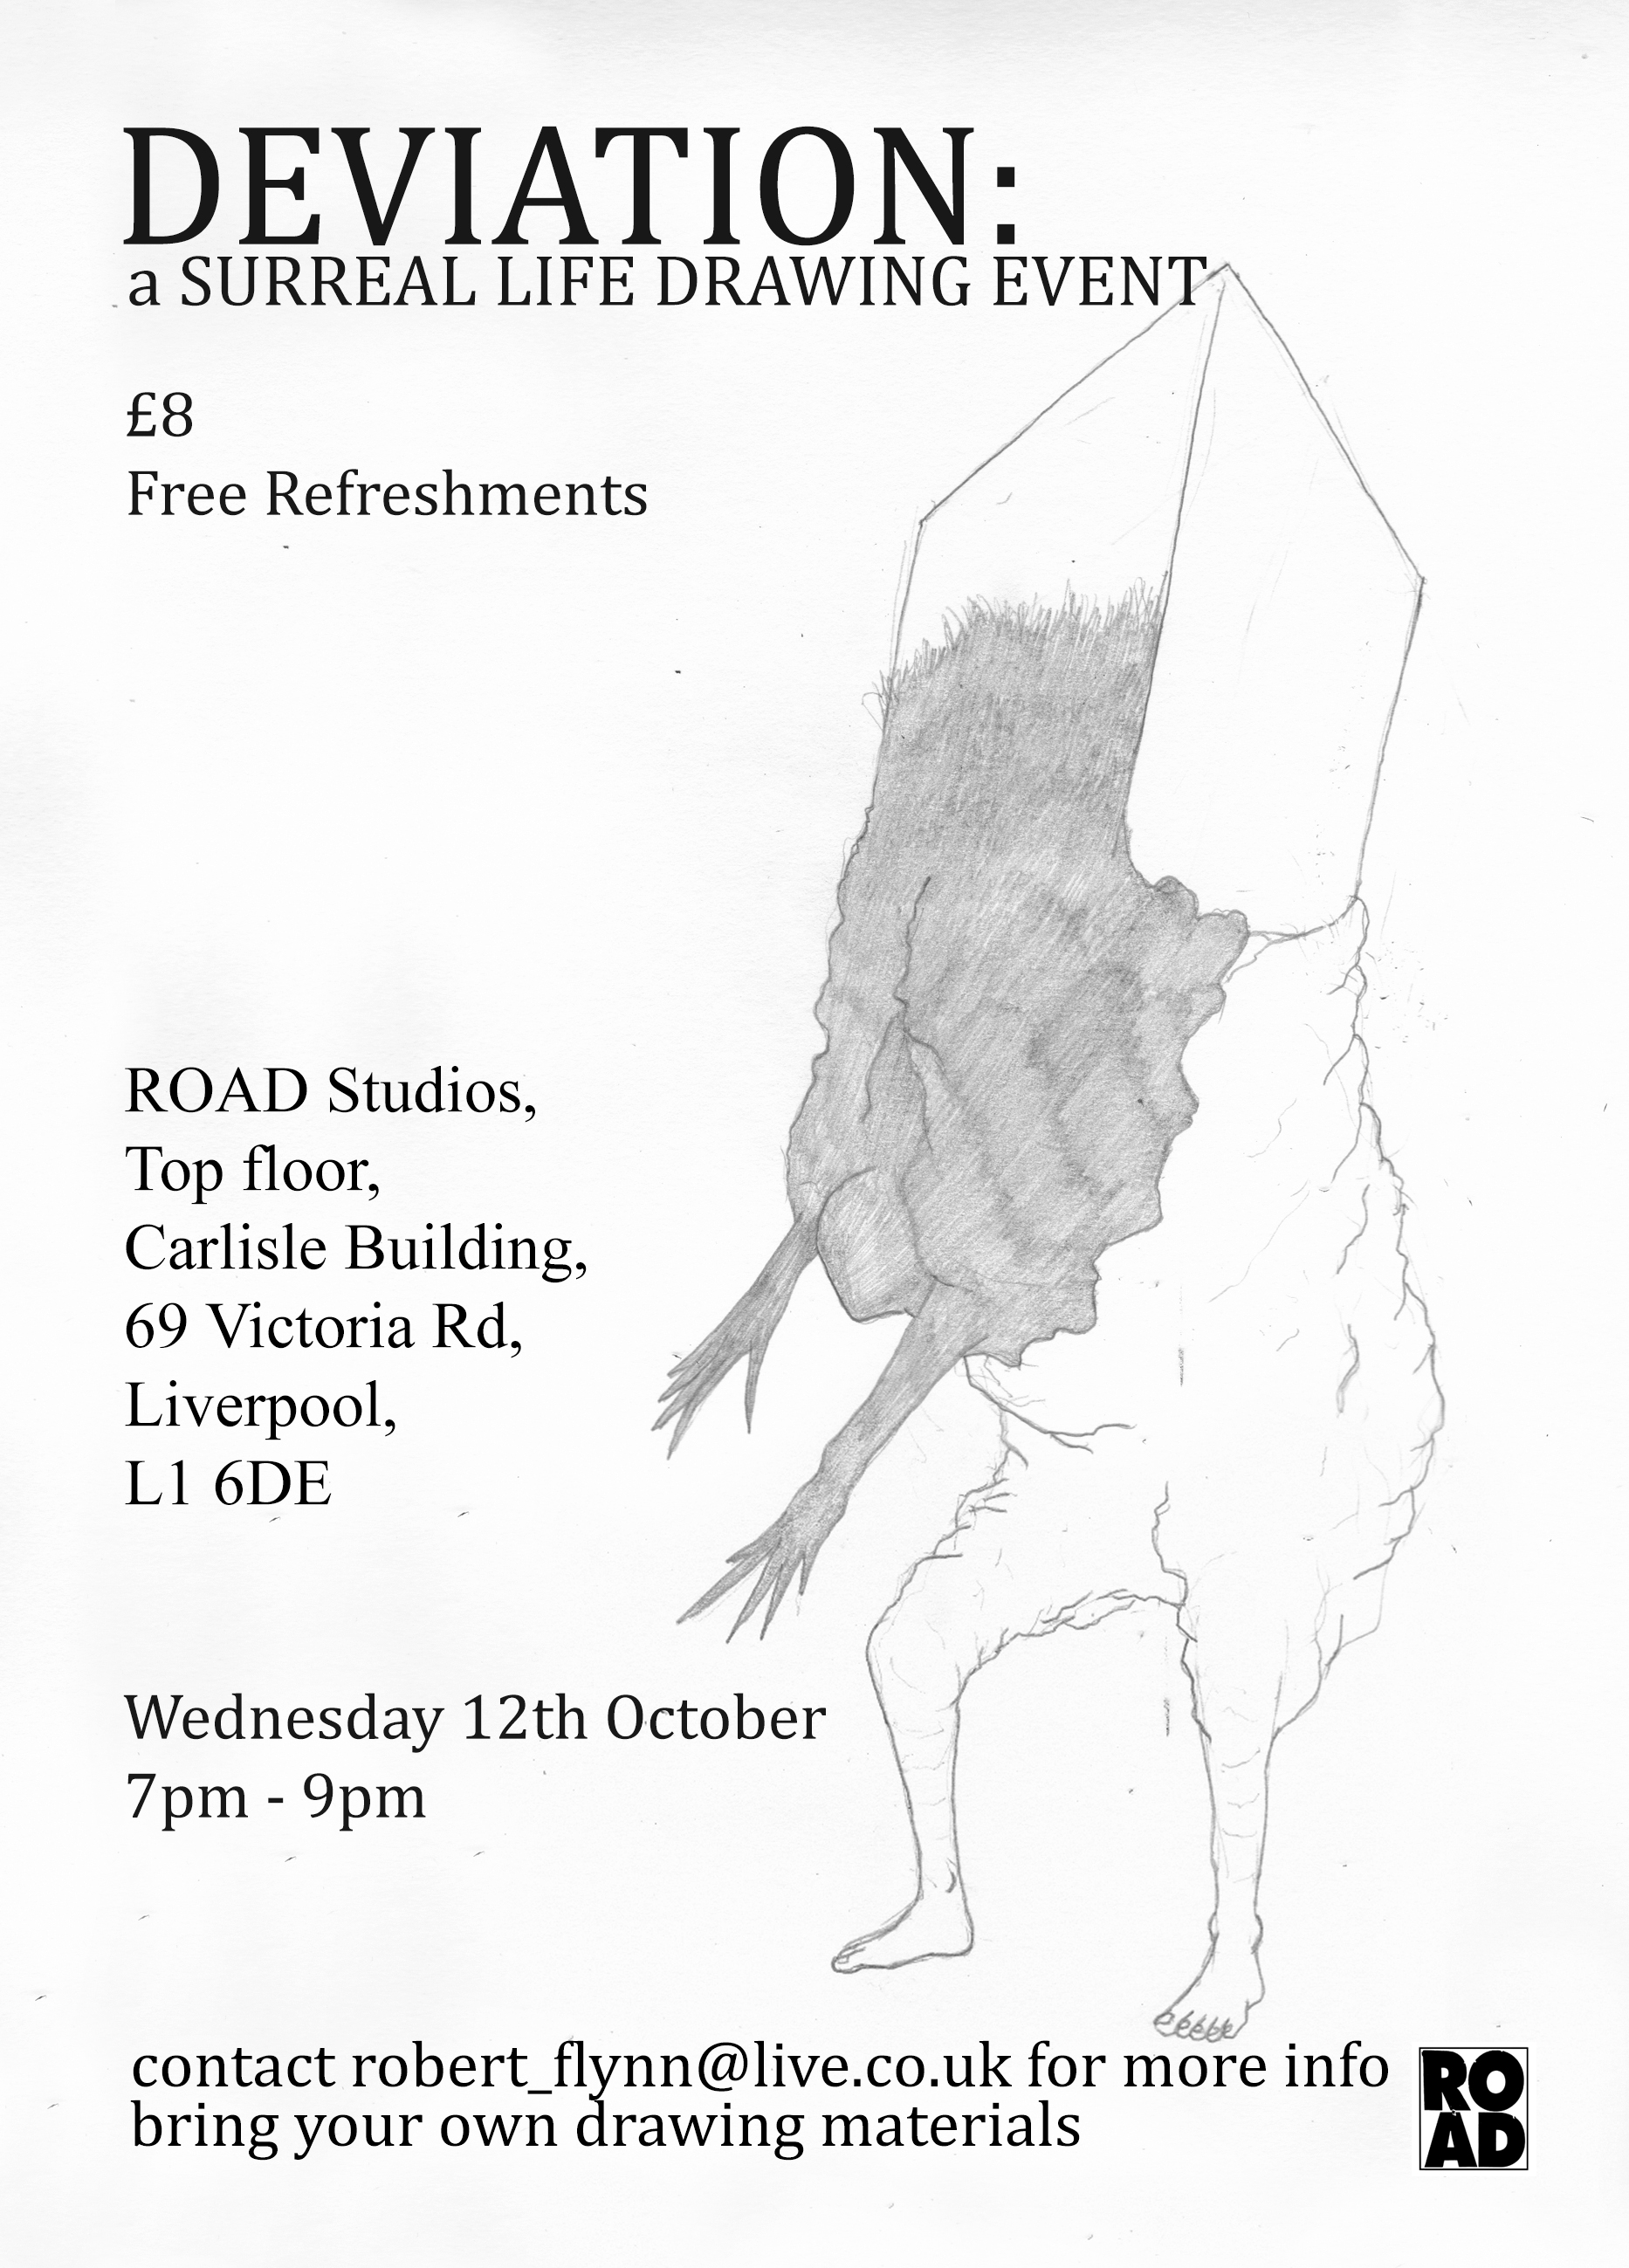 Deviation: a Surreal Life Drawing Experience